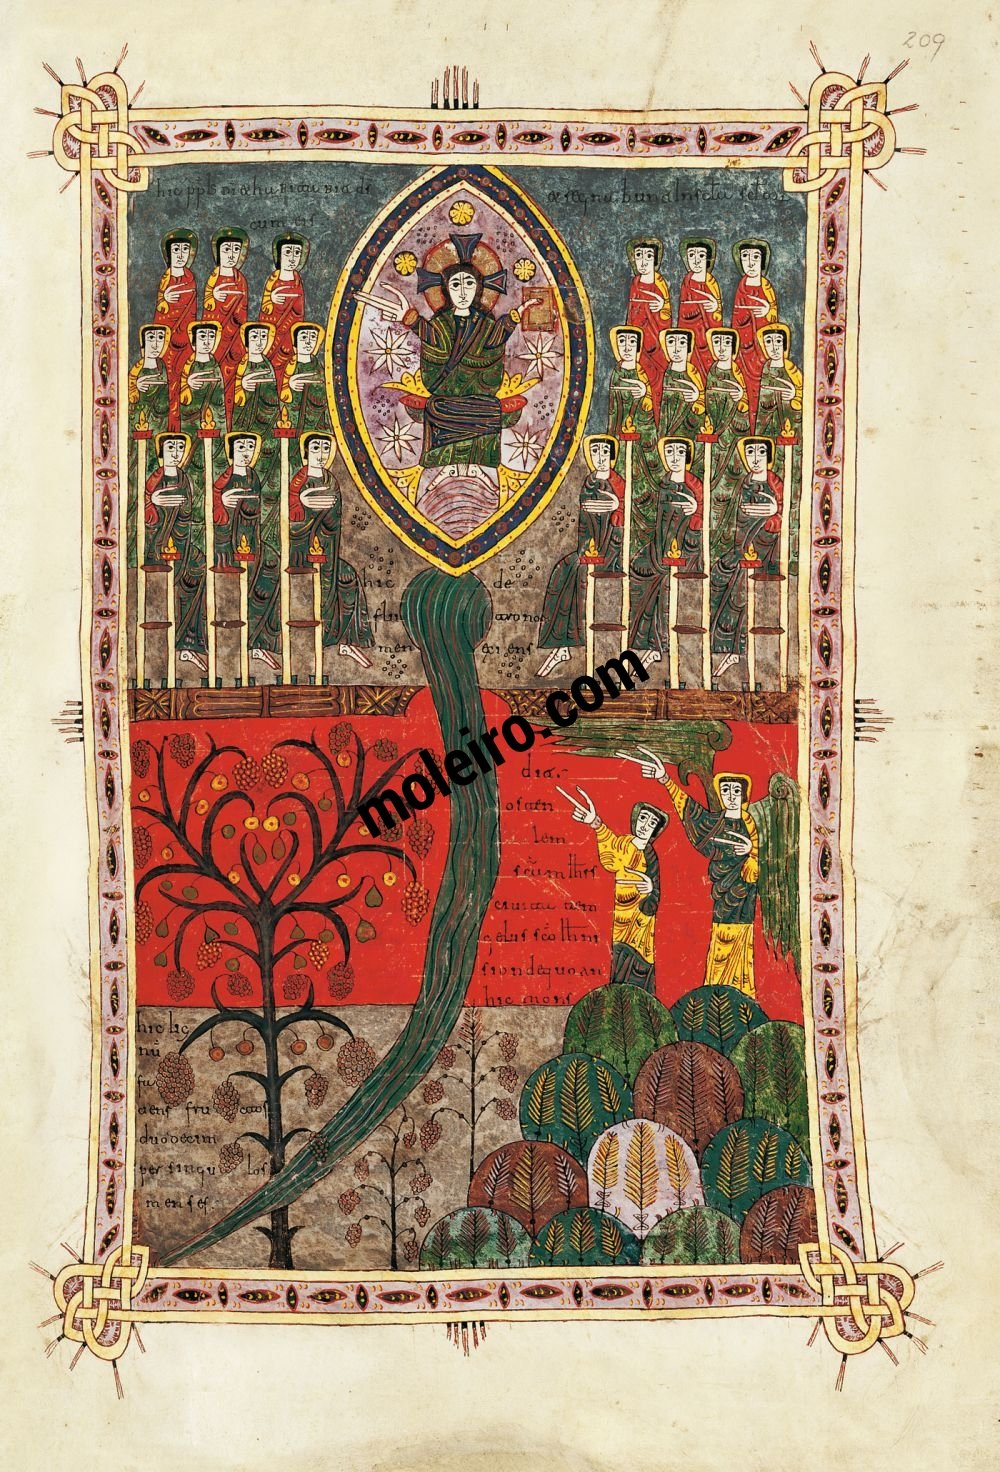 Silos Beatus f. 209r, Christ upon his throne and the river of life